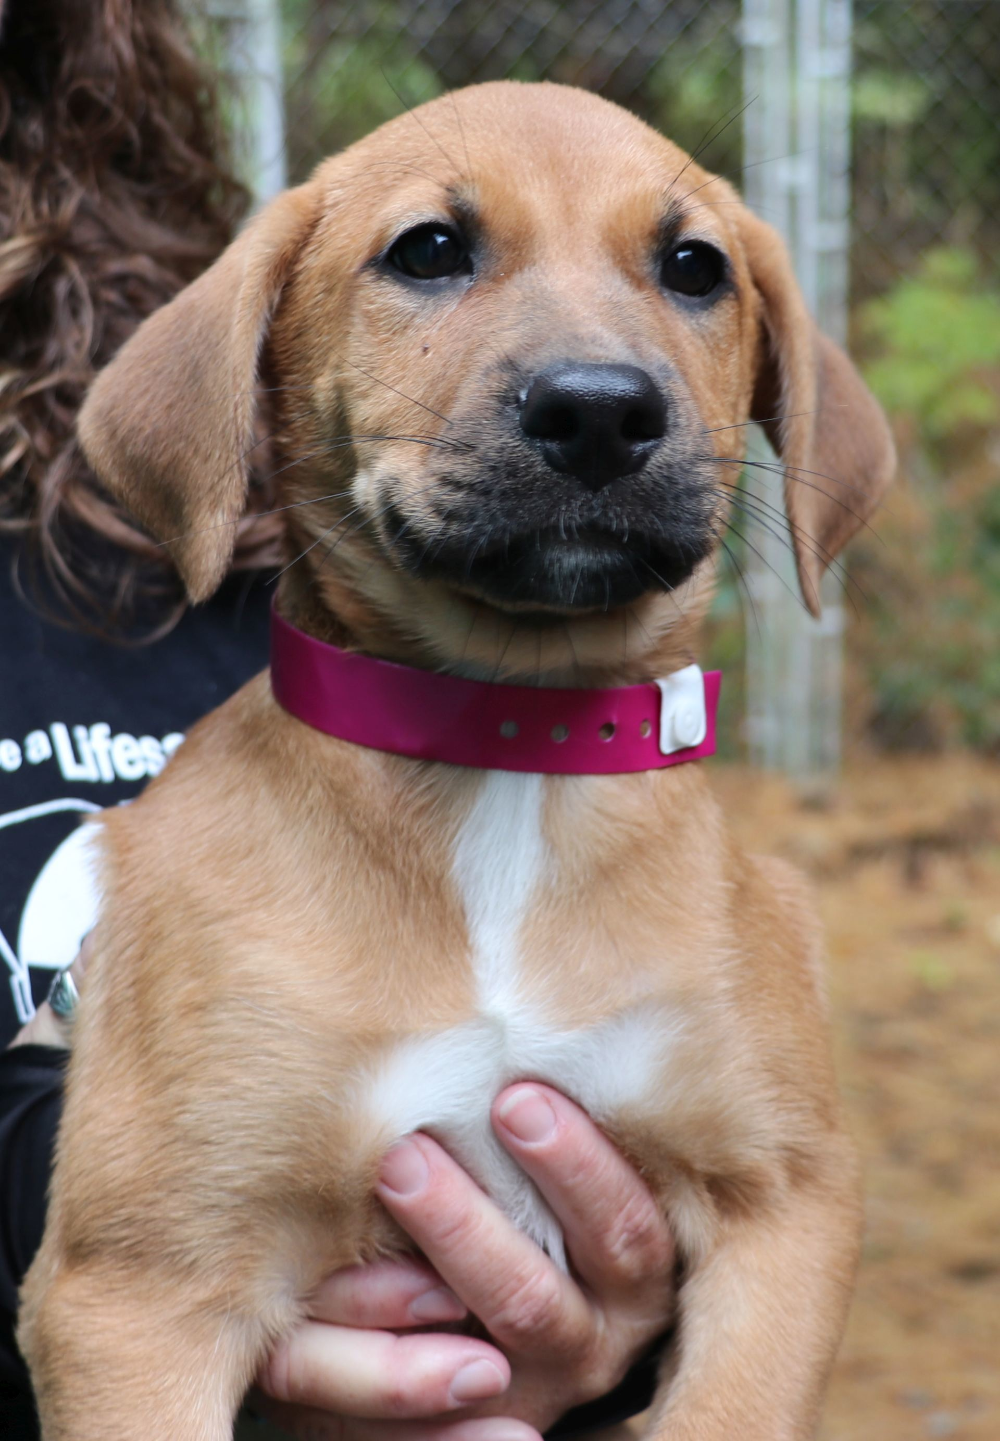 Ct Riley Avail Oct 23 Is An Adoptable Dog Mountain Cur Shepherd Mix Searching For A Forever Family Near Ellington Ct Use Petfinder To Fi With Images Dogs Dog Adoption